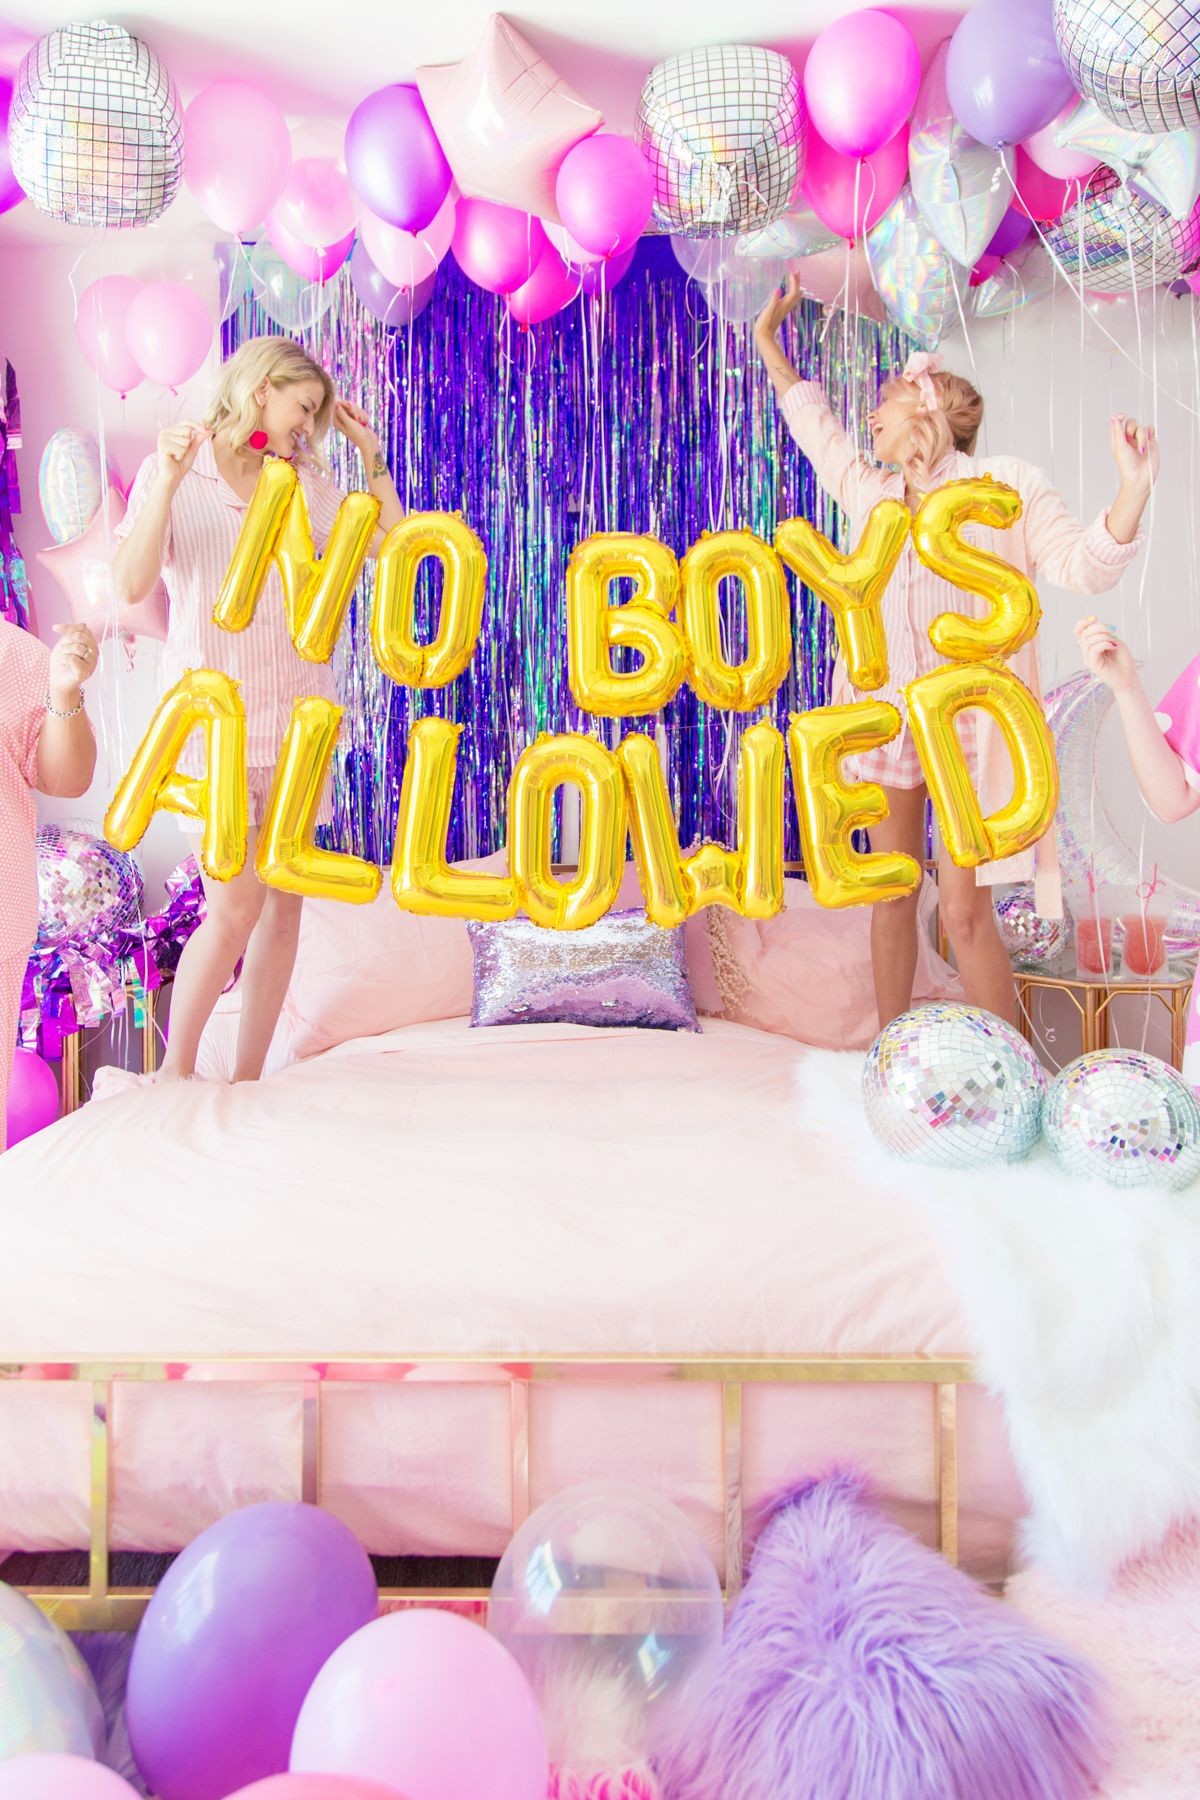 No Boys Allowed A Holographic Neon Slumber Party Studio Diy Slumber Party Birthday Birthday Party For Teens Fun Sleepover Ideas